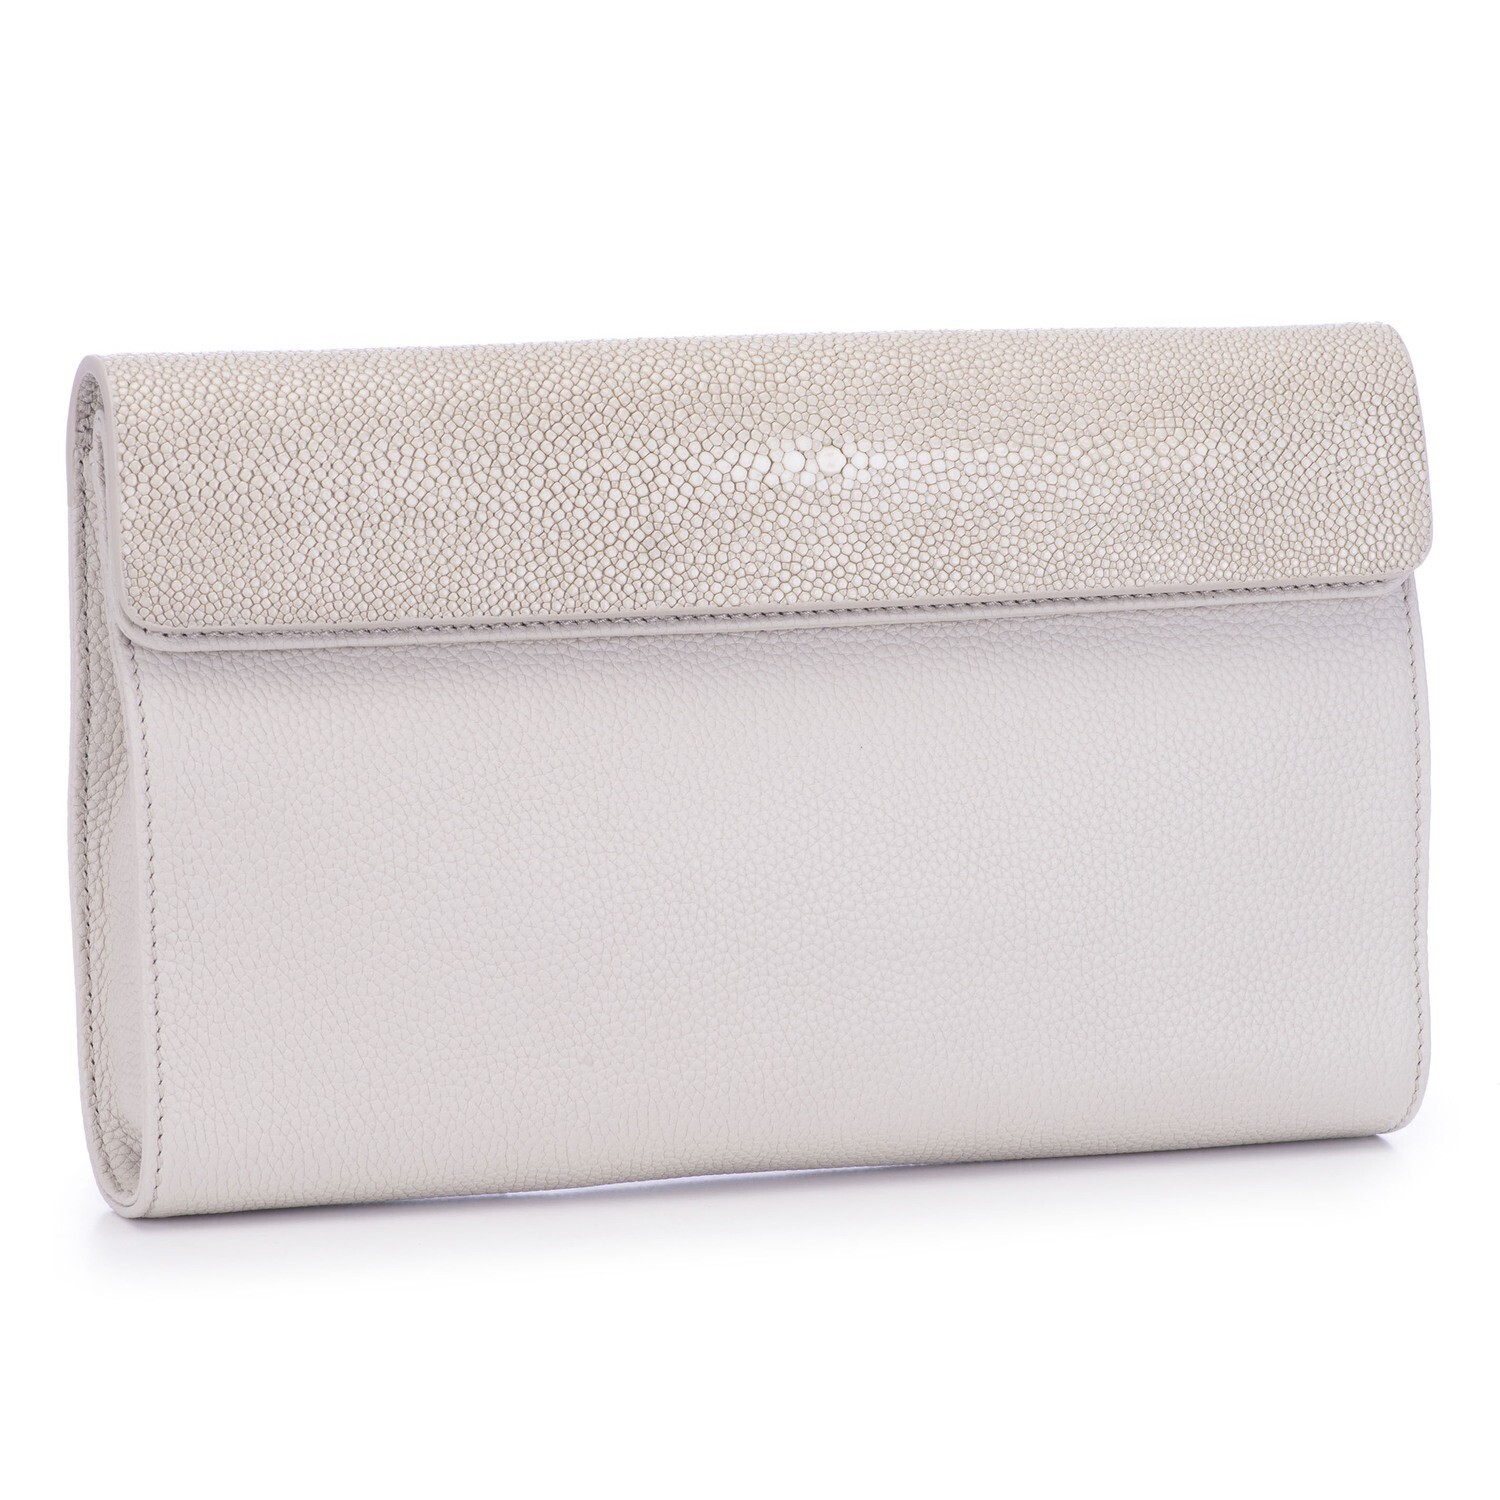 Cream Shagreen and Leather Clutch, Crossbody